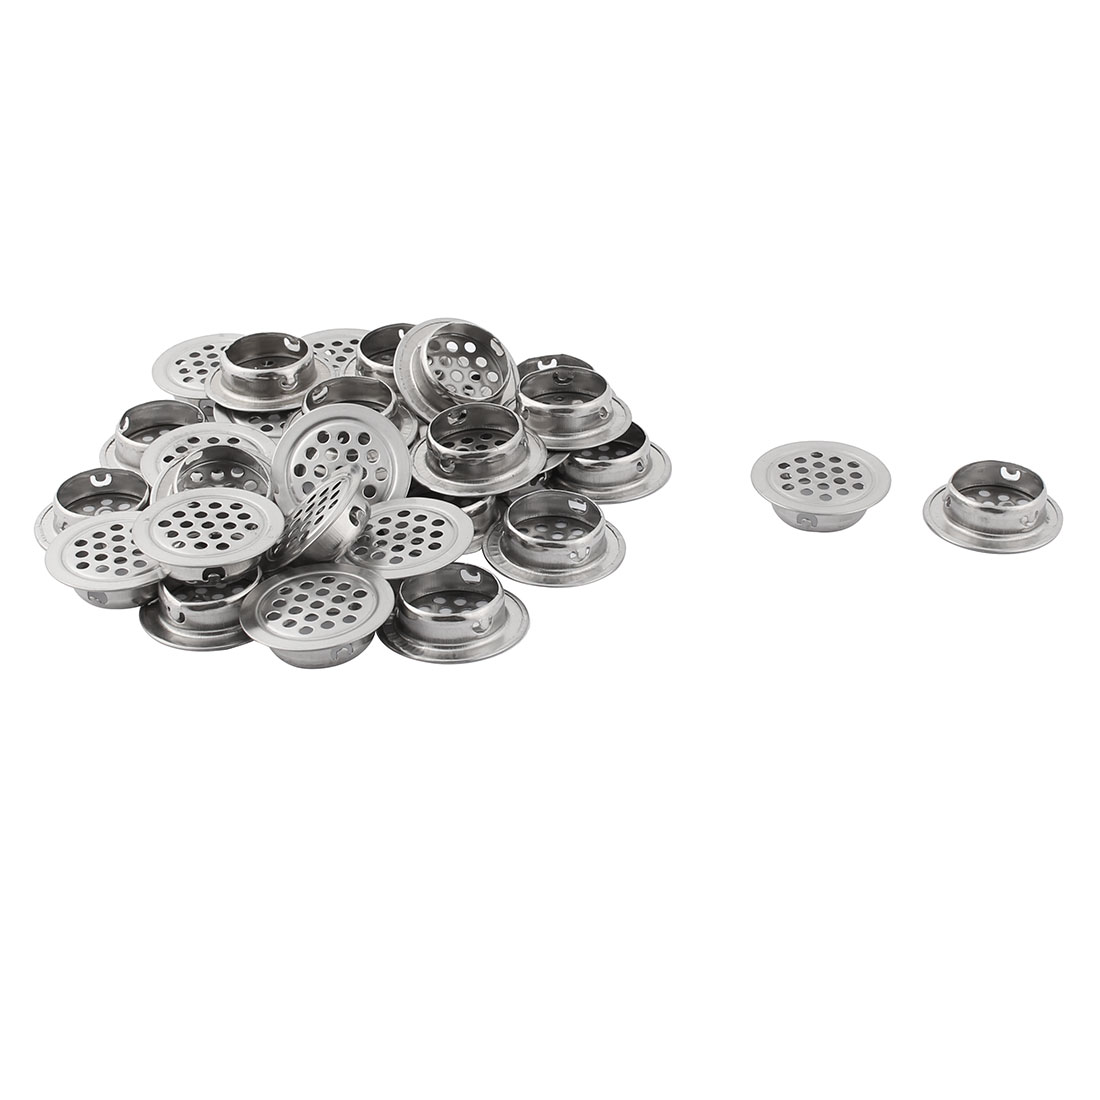 Home Stainless Steel Furniture Wardrobe Perforated Mesh Air Vents 29mm Dia 30pcs